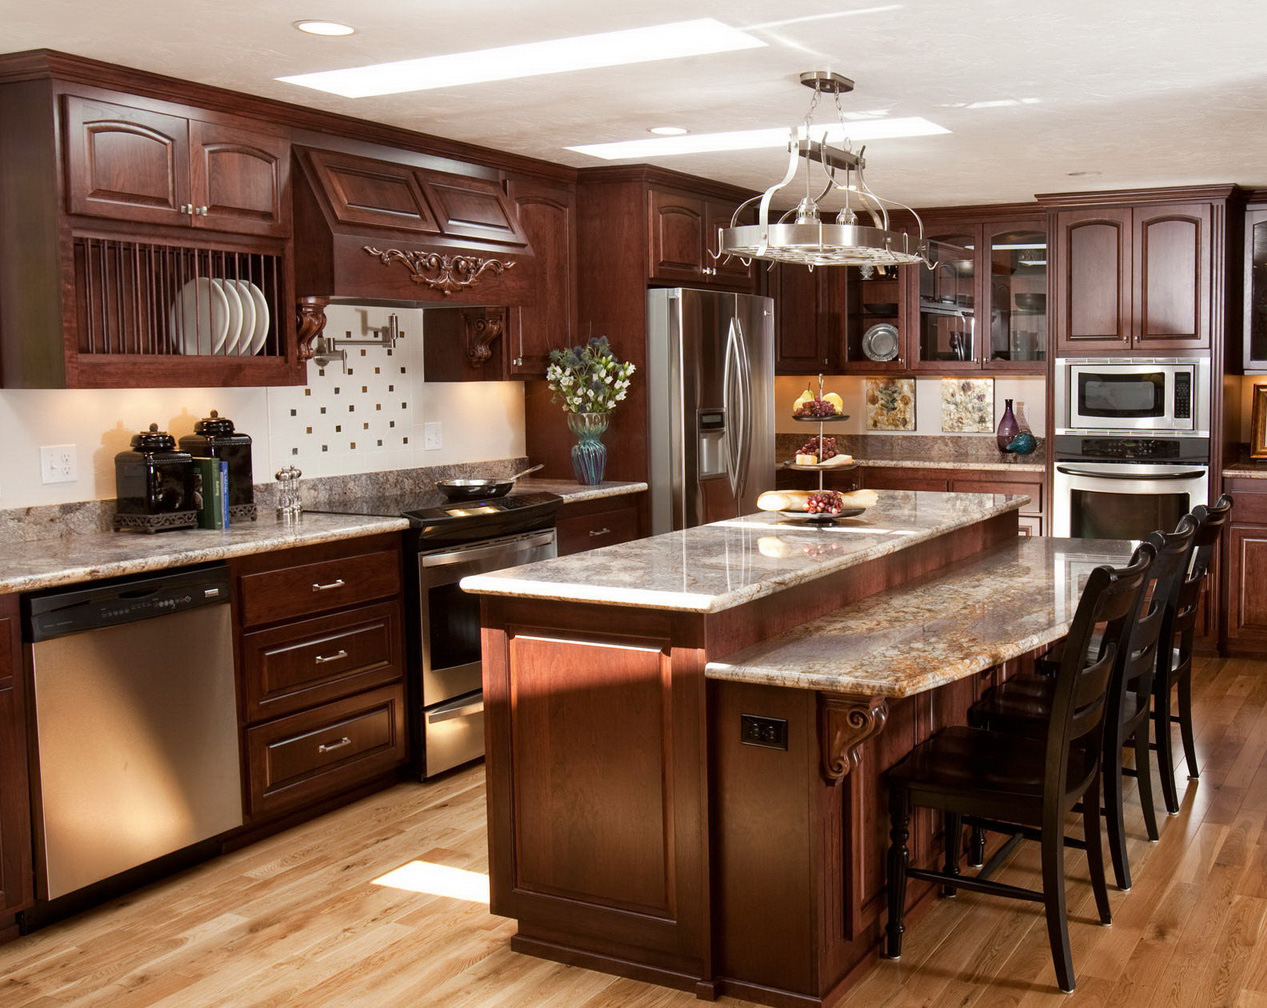 pictures of dark wood kitchen cabinets مطابخ خشب مودرن حواء 24671